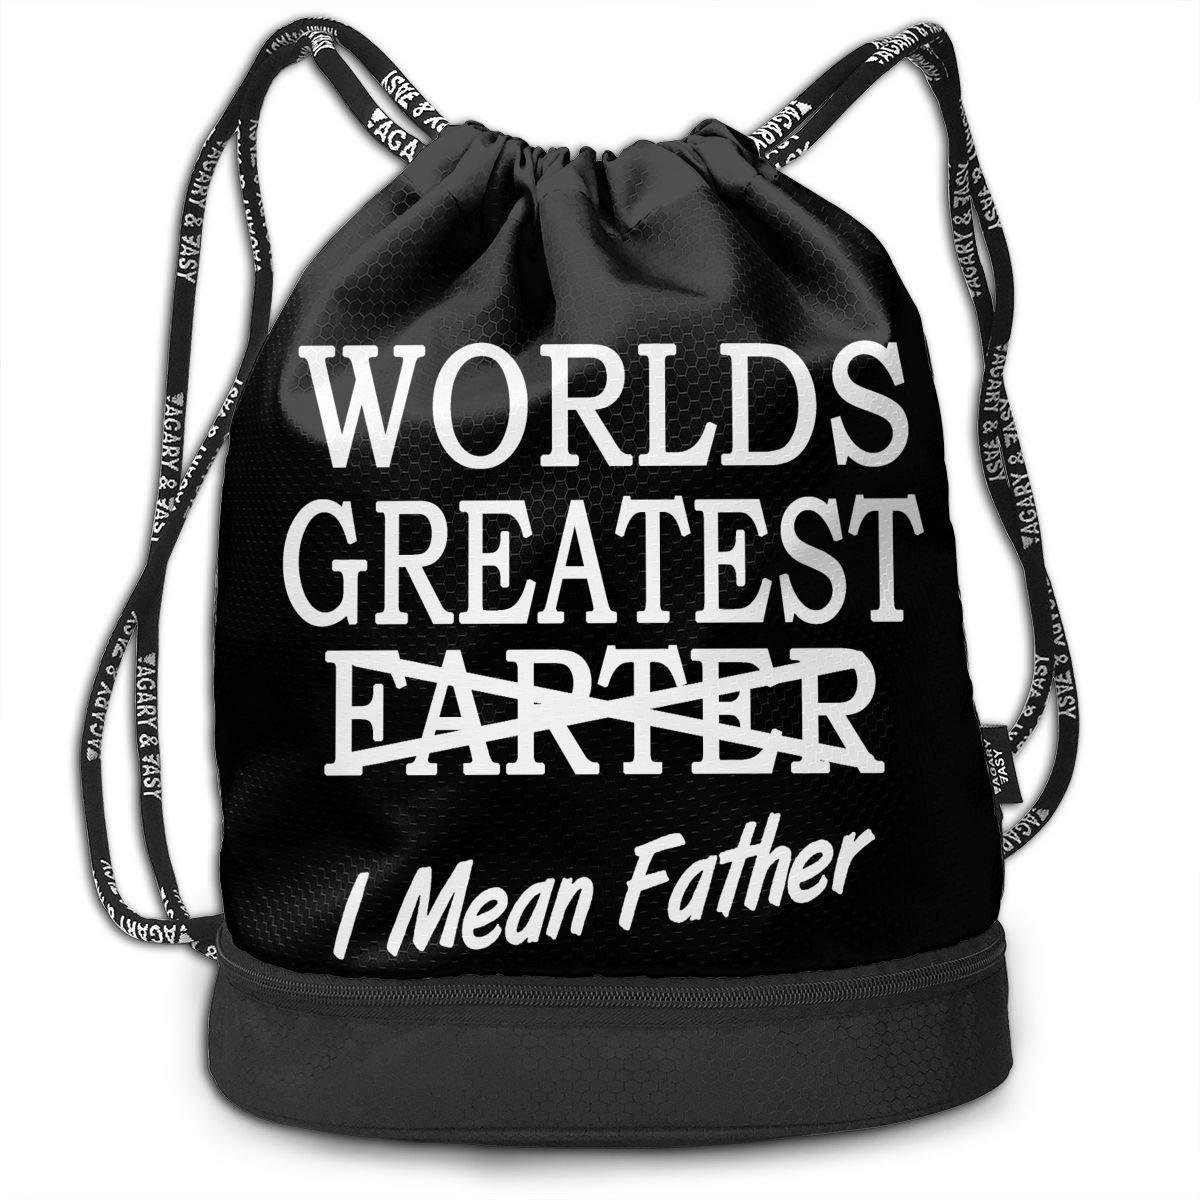 HFTIDBC Worlds Greatest Farter I Mean Father String バックパック シンチバッグ   B07KPVJW74